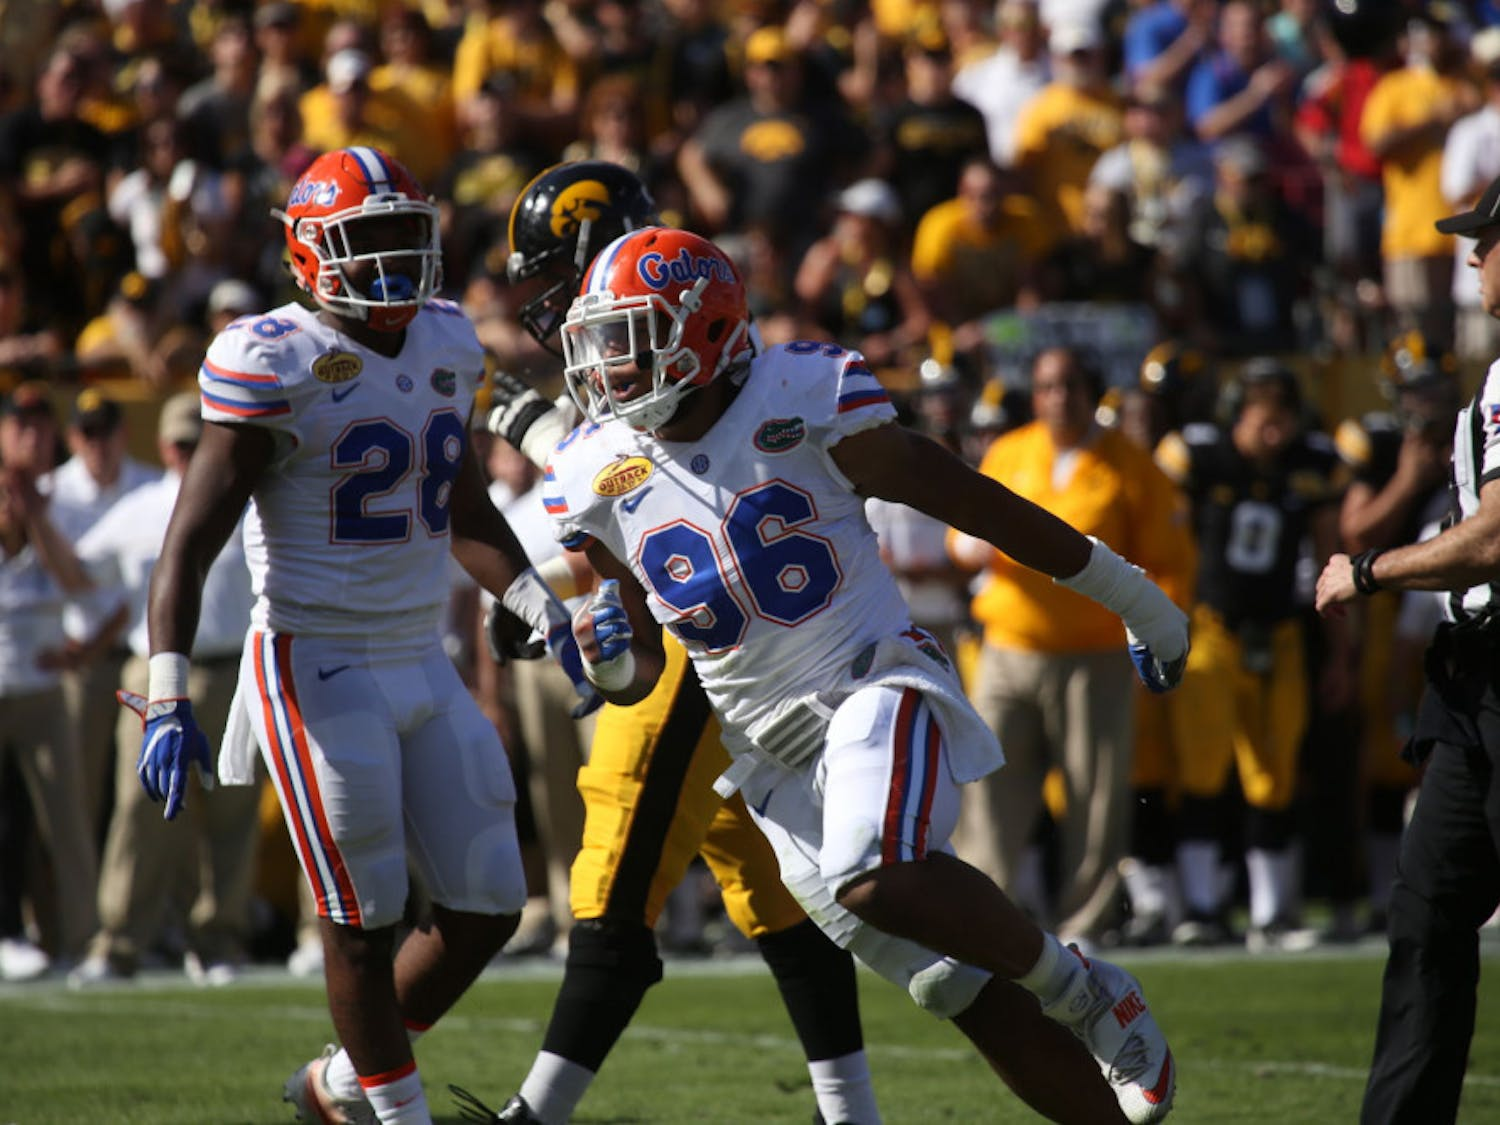 CeCe Jefferson celebrates a play during Florida's 30-3 win against Iowa at the Outback Bowl on Jan. 2, 2017, at Raymond James Stadium.